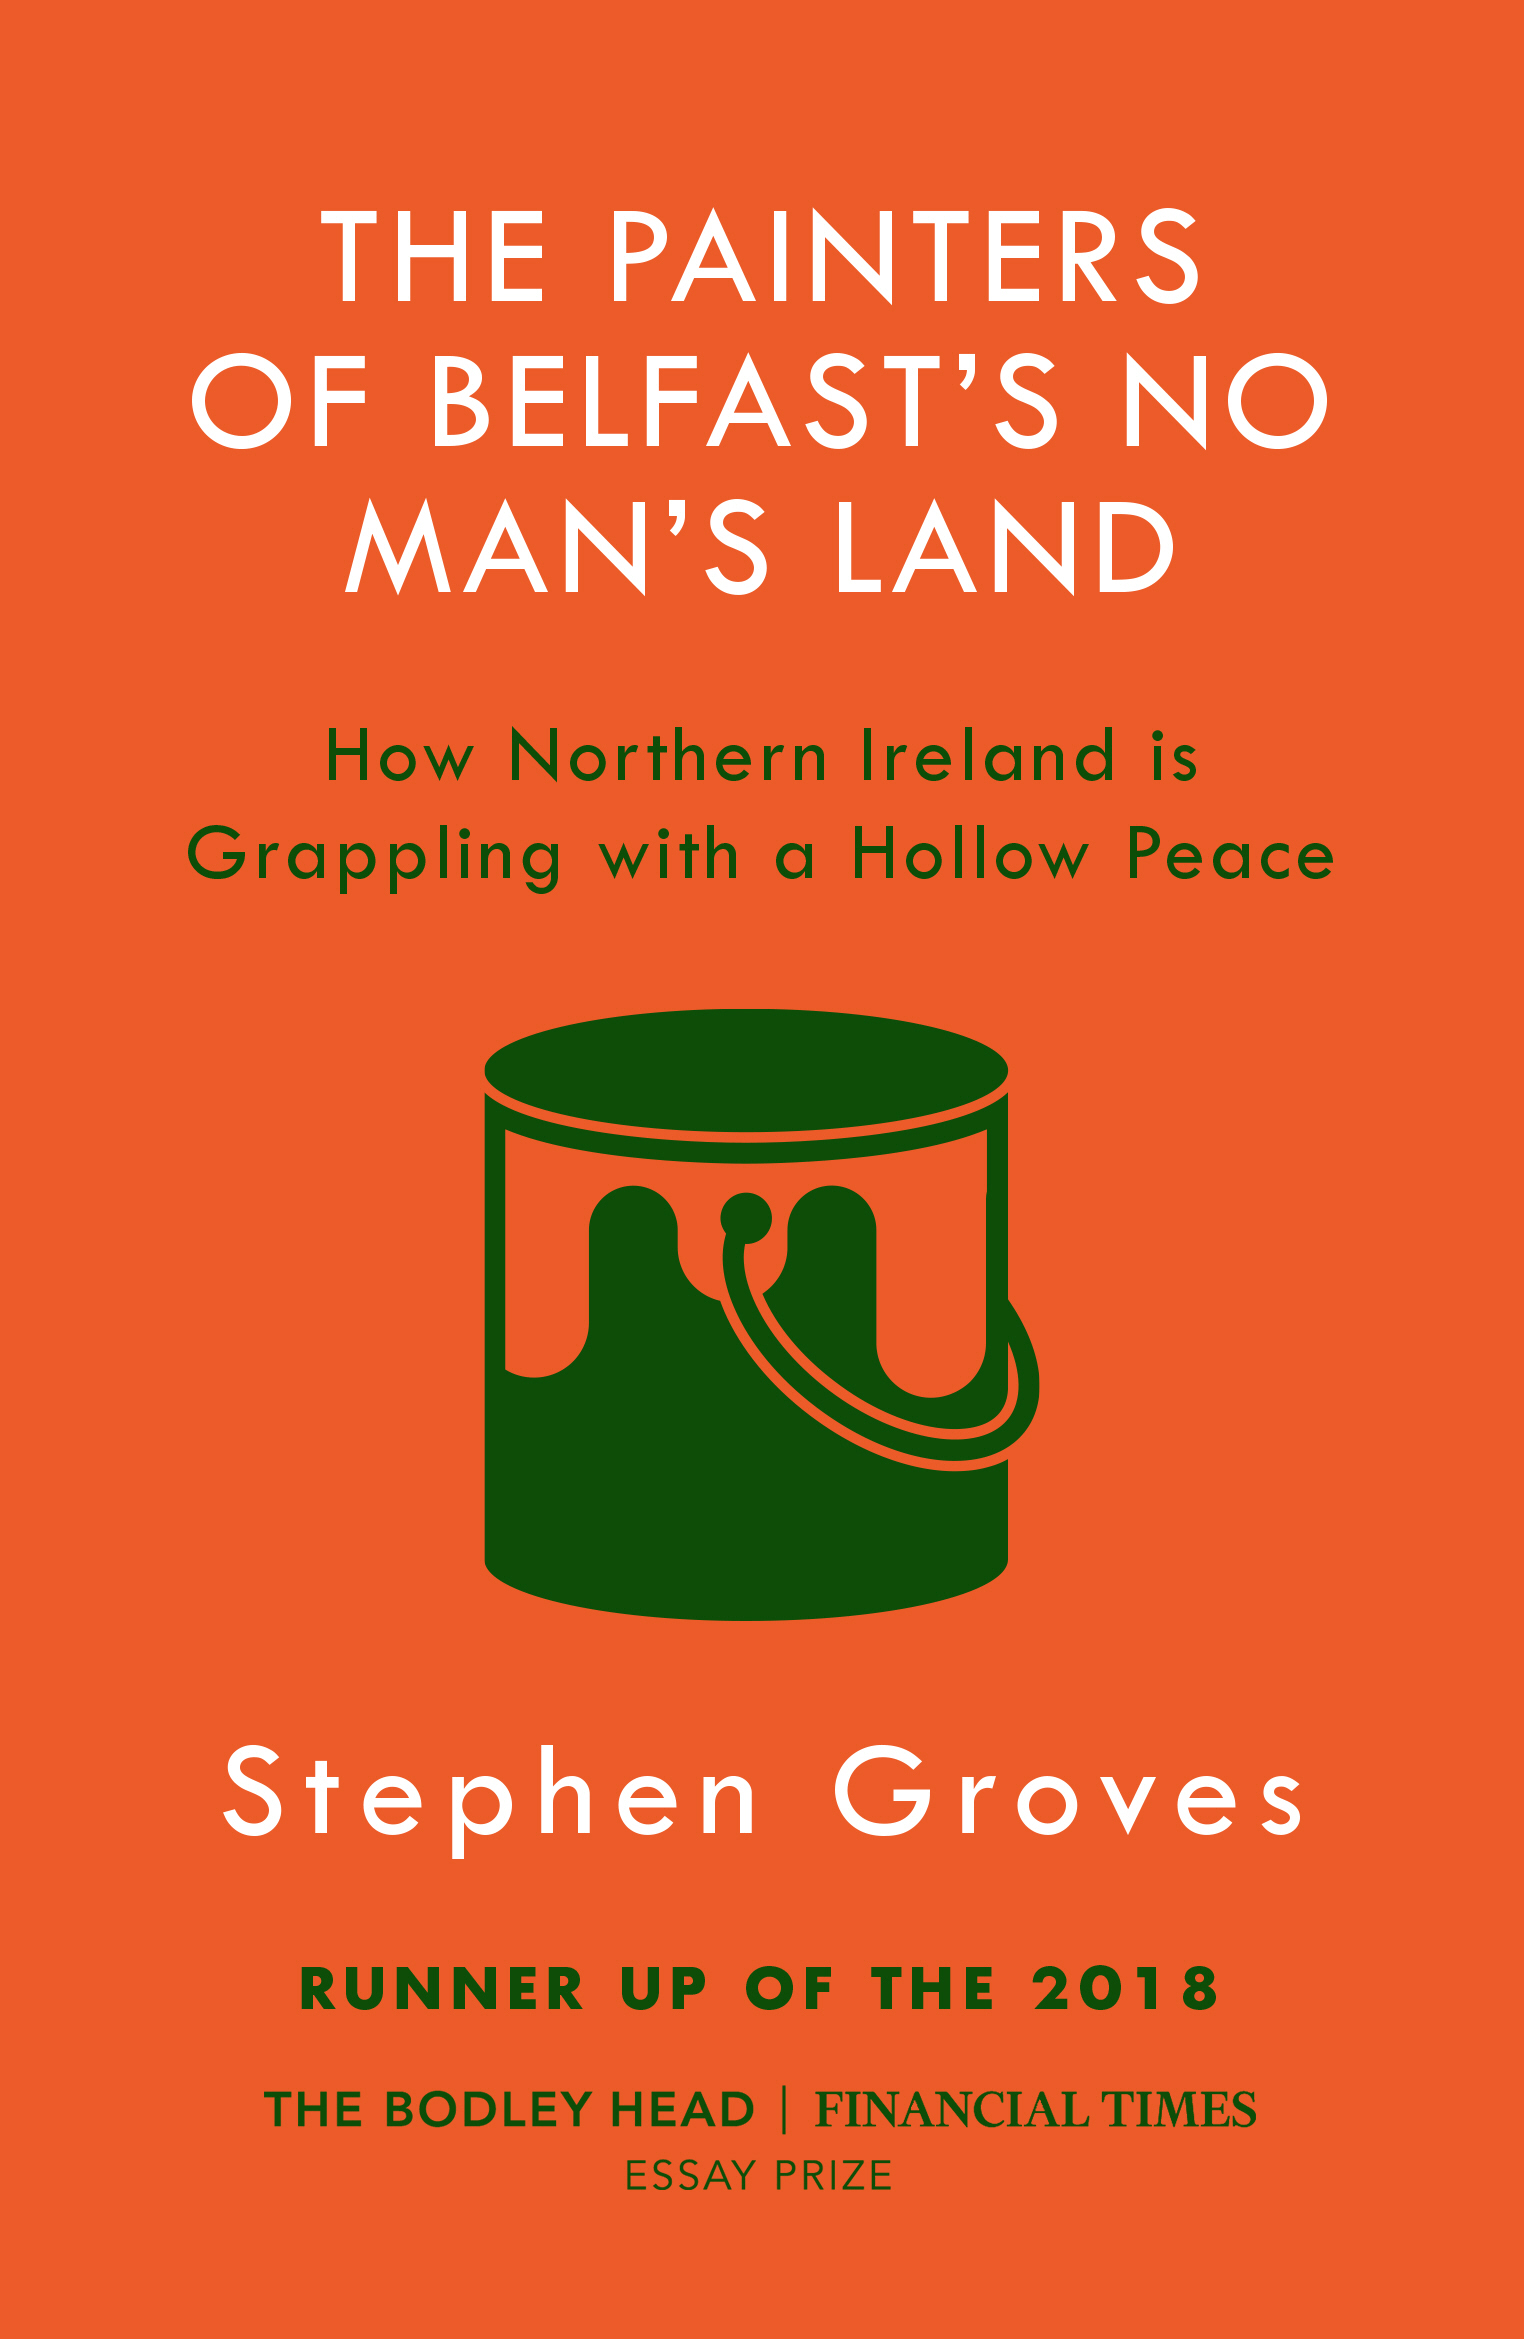 The Painters of Belfast's No Man's Land